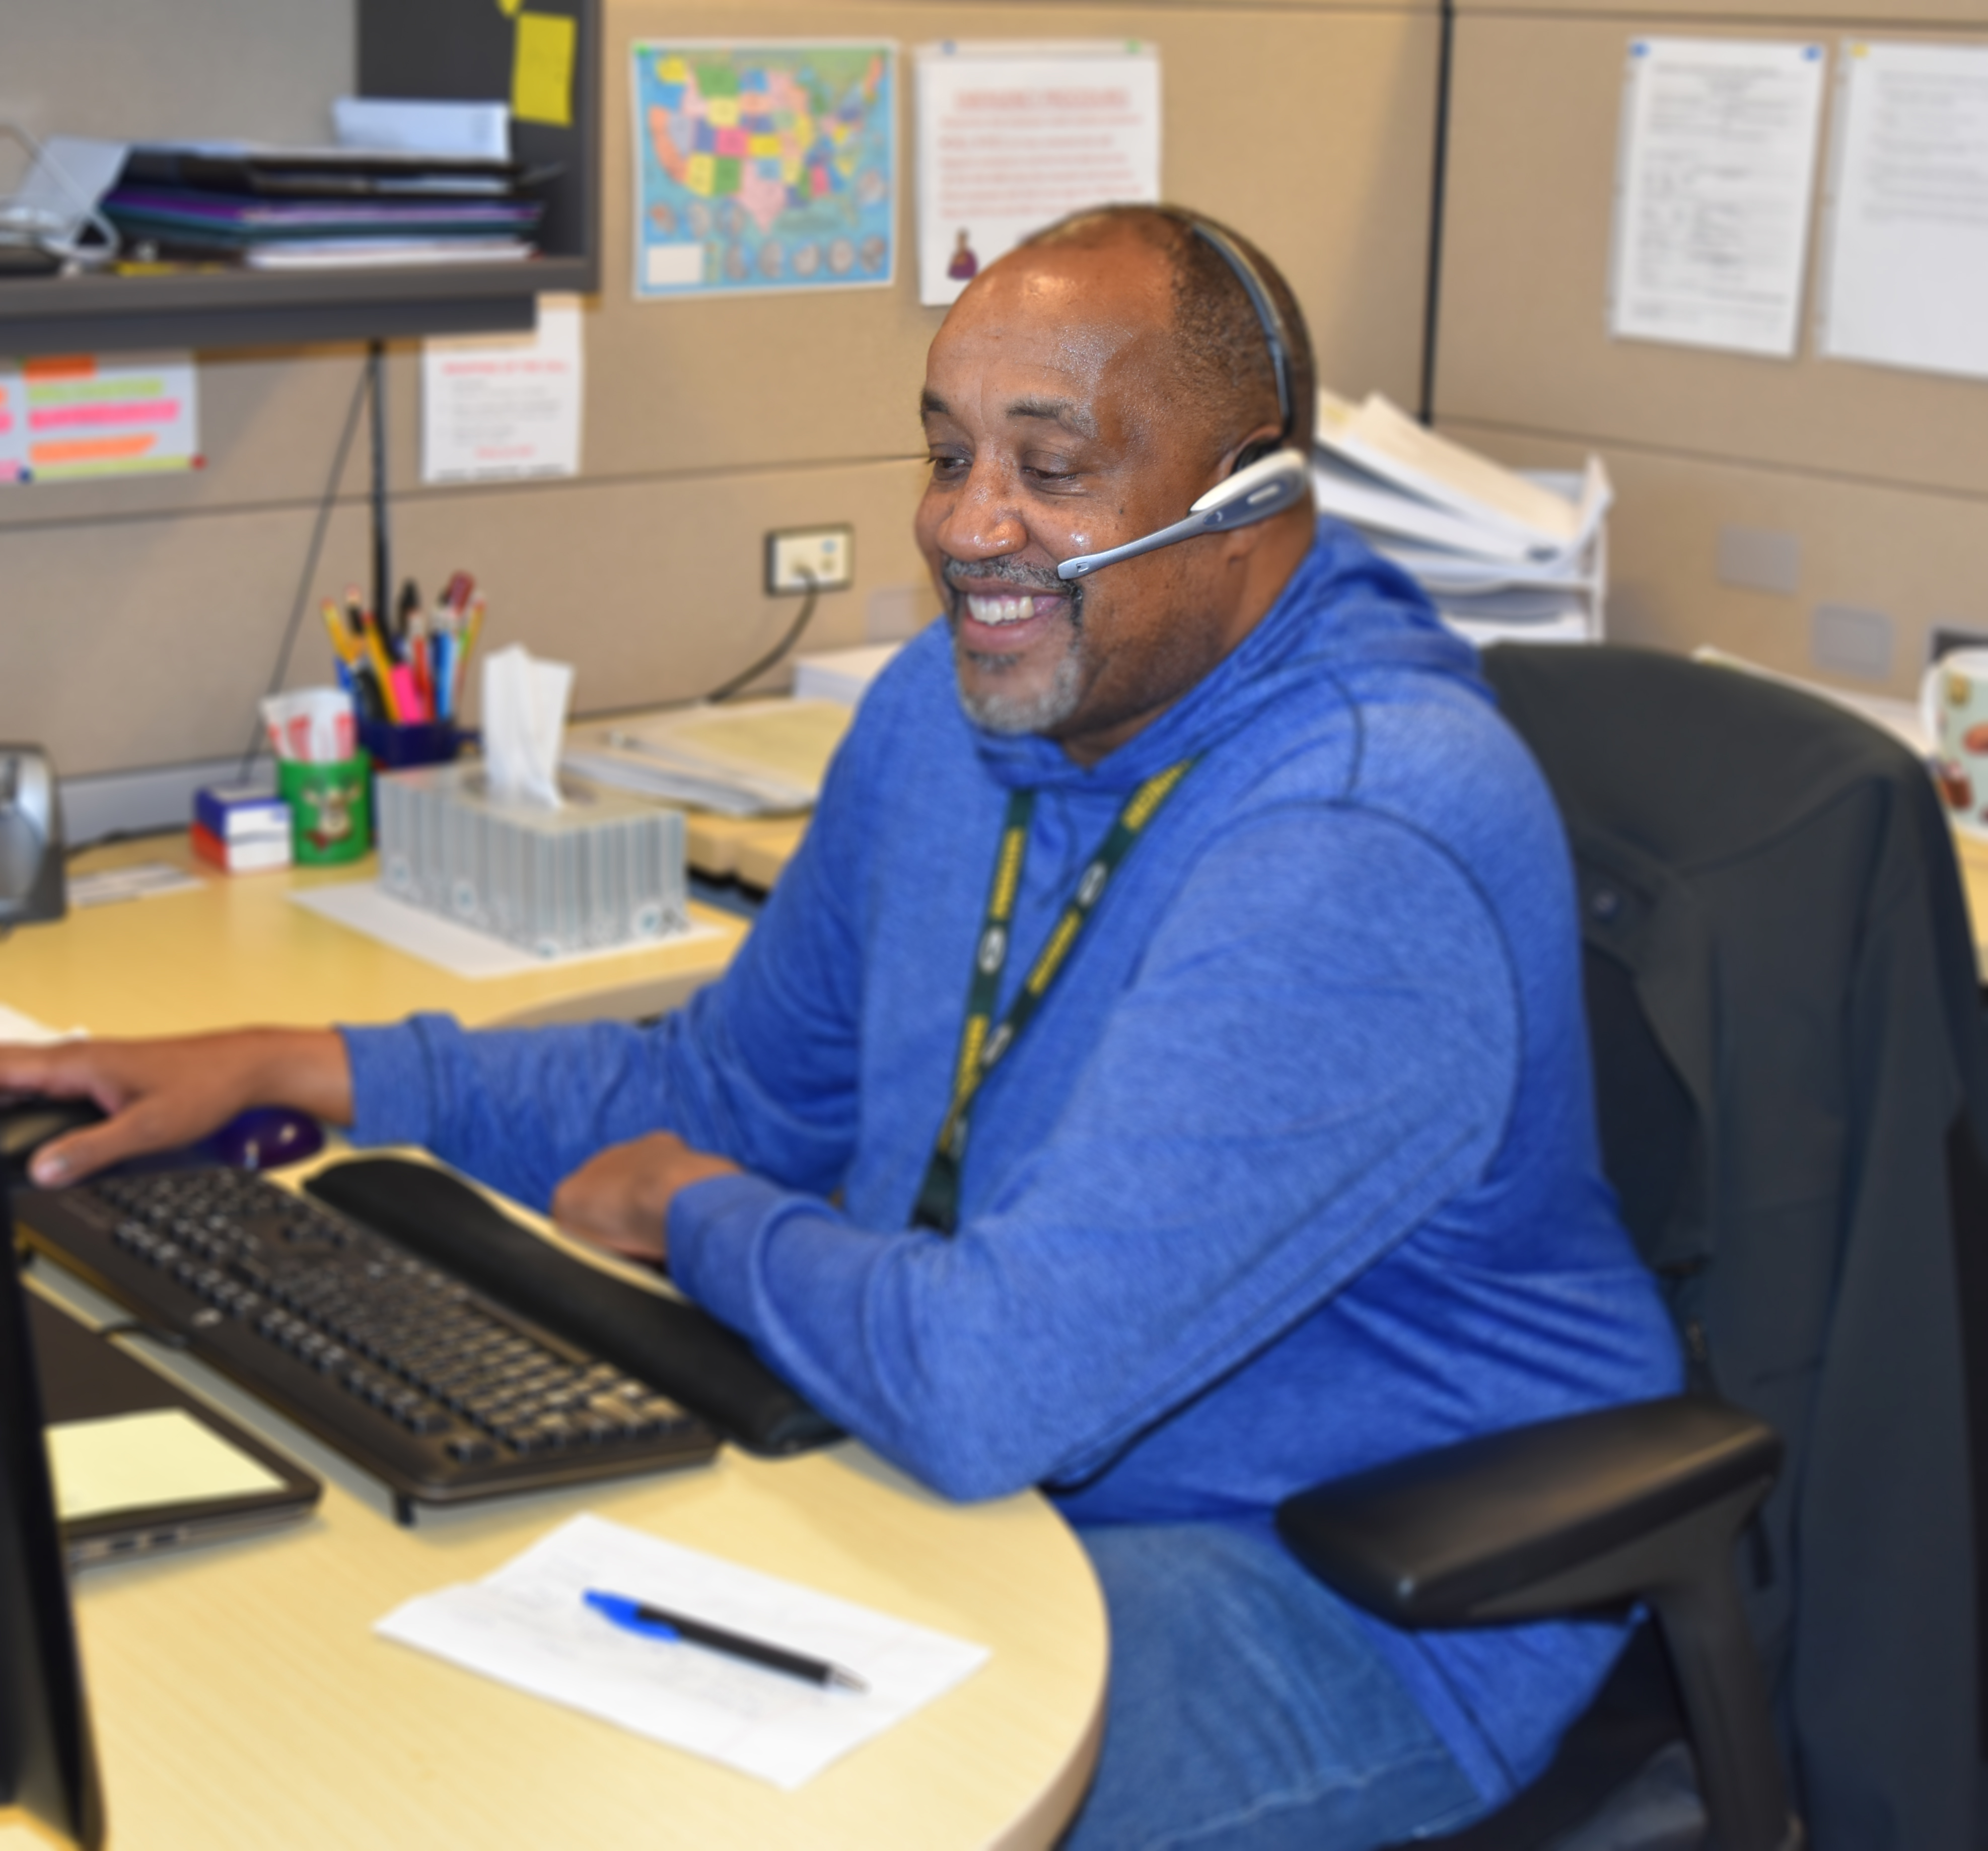 Forest Service HRM employee, Rudy Wise helps a Forest Service employee with HR questions.